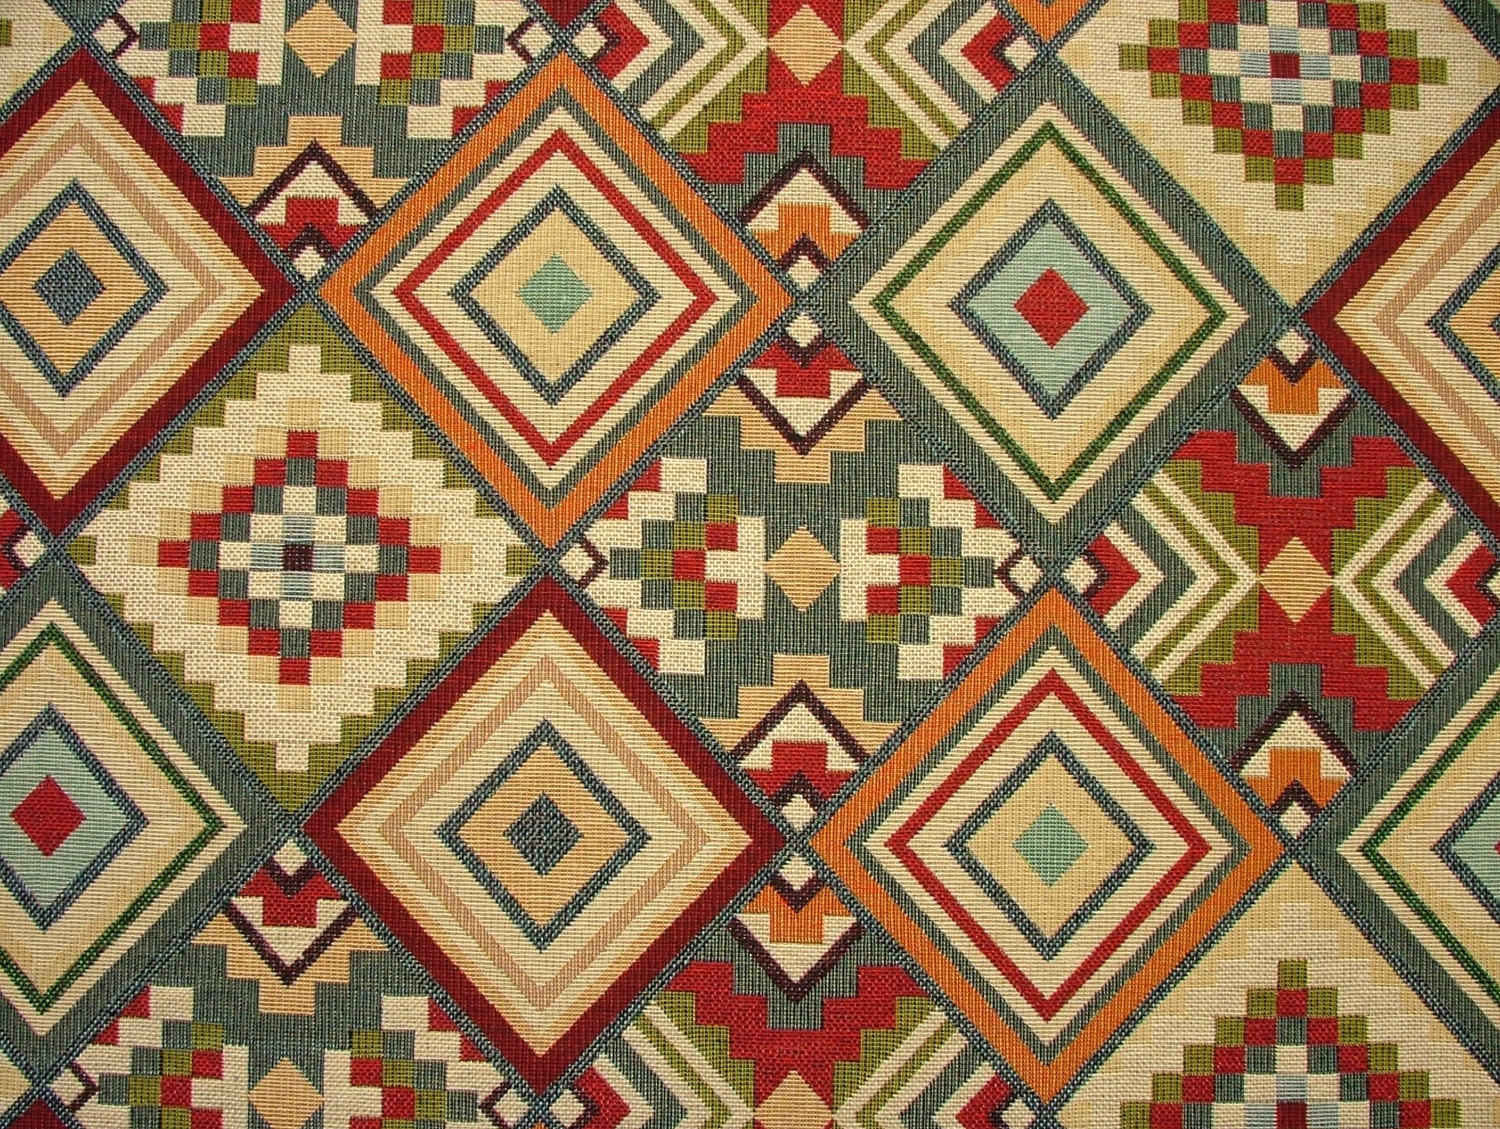 Tapestry Kilim Luxury Designer Fabric Ideal For Upholstery